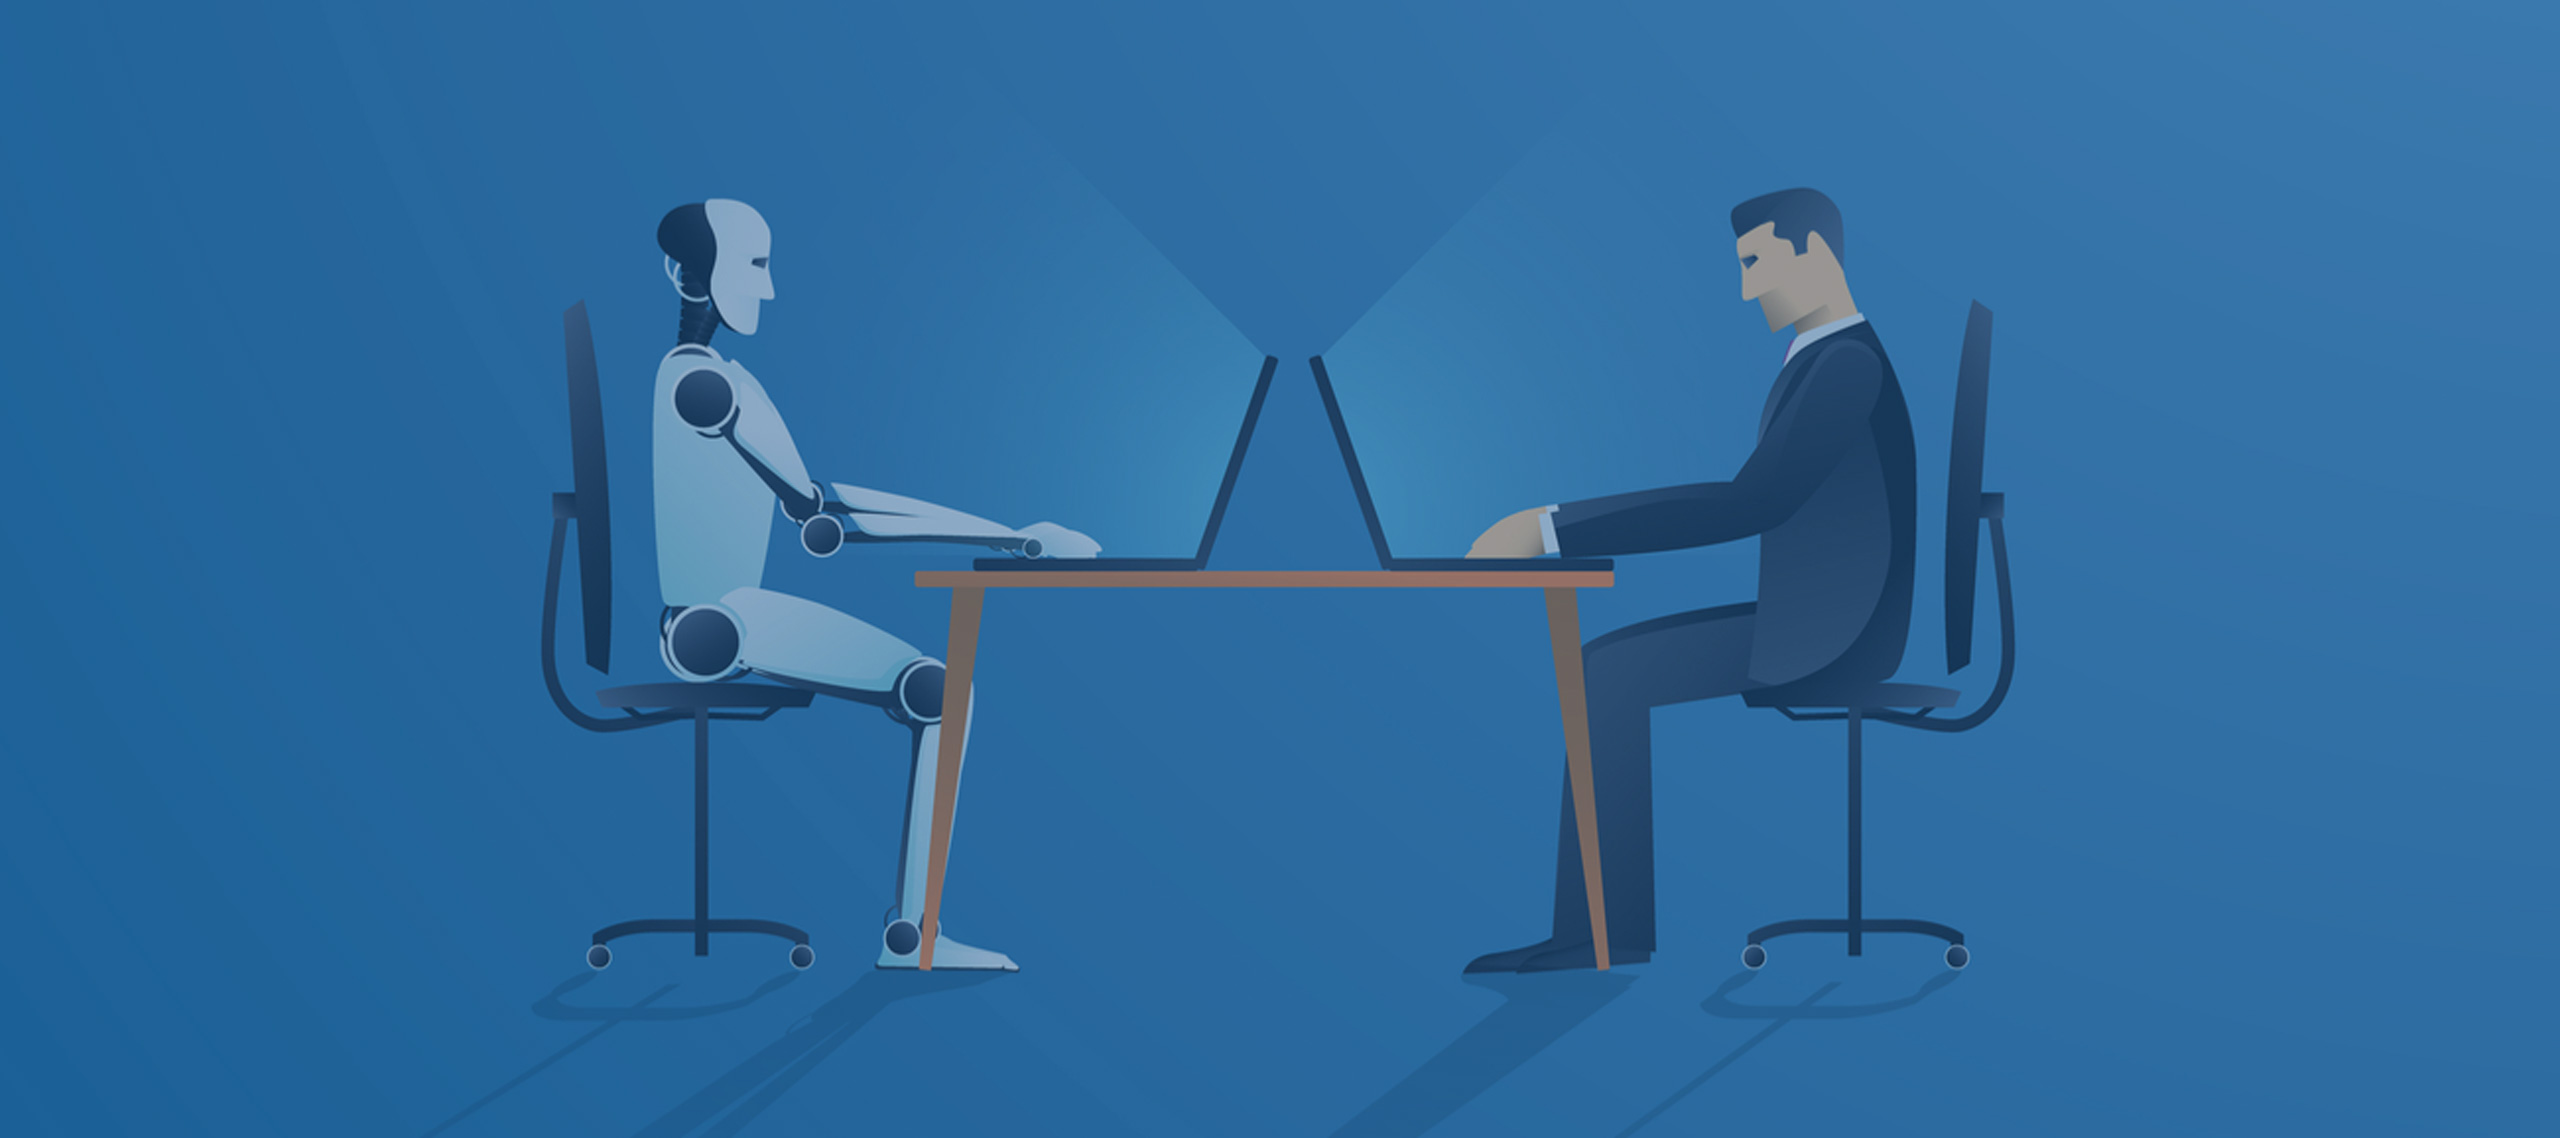 There is No Room for Technophobia When It Comes to Direct Selling